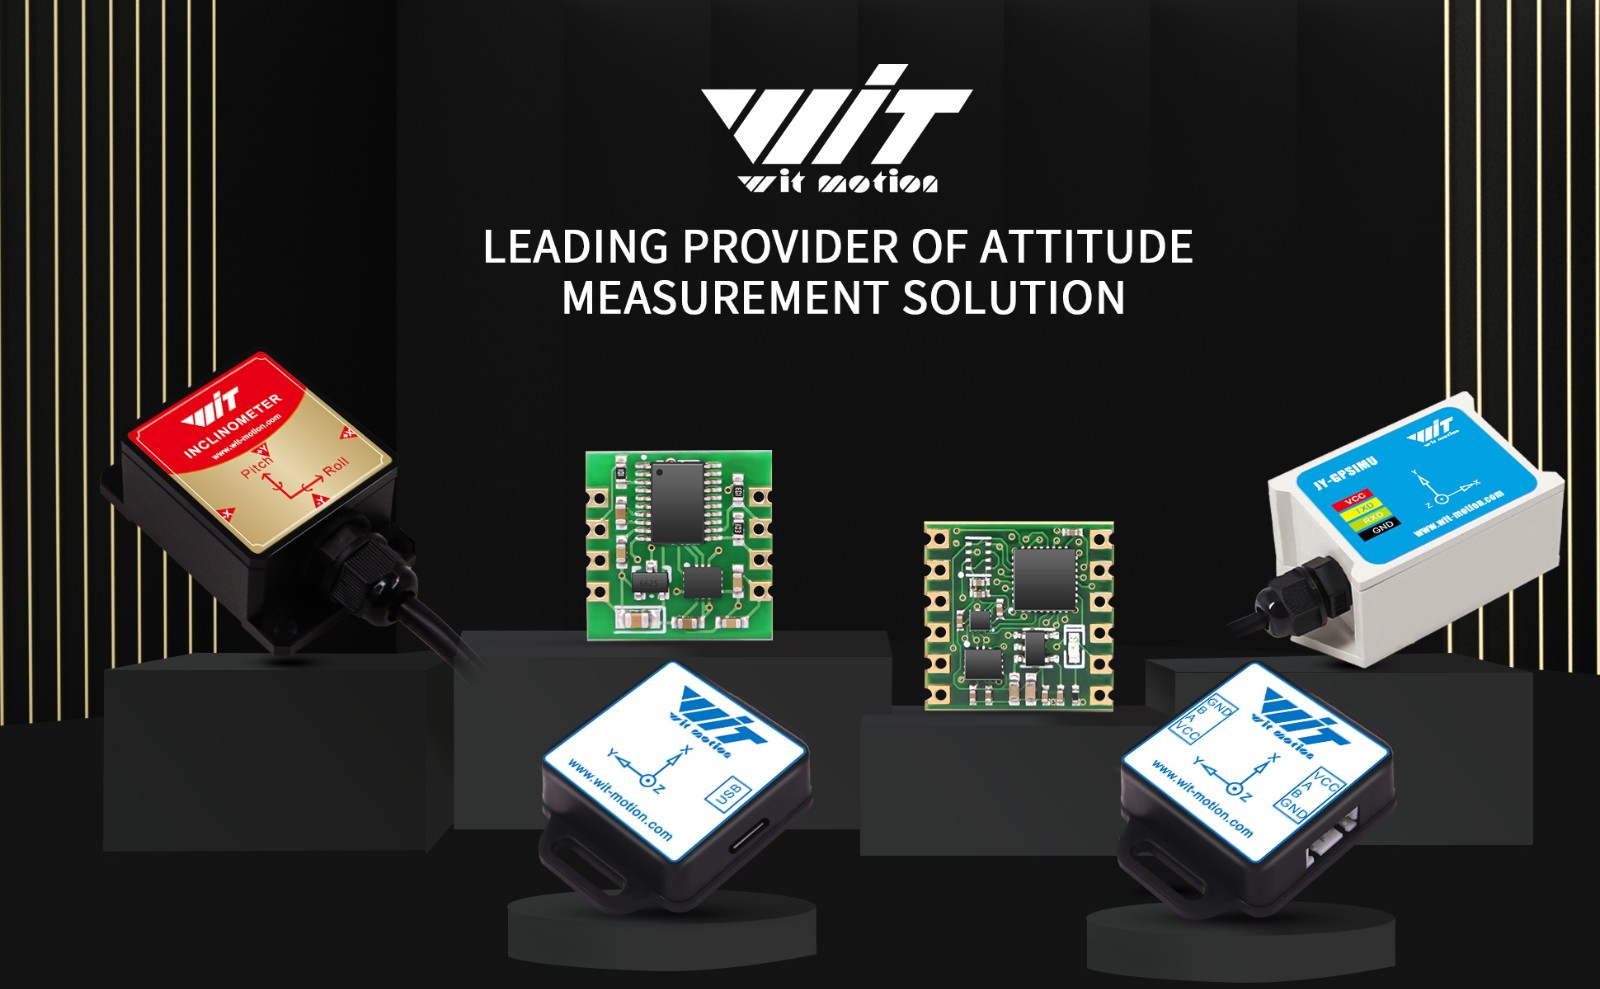 WitMotion WT61C TTL AHRS 6 Axis Sensor Tilt Angle Inclinometer (Roll Pitch)   Accelerometer   Gyroscope MPU-6050 For PC/Android/MCU